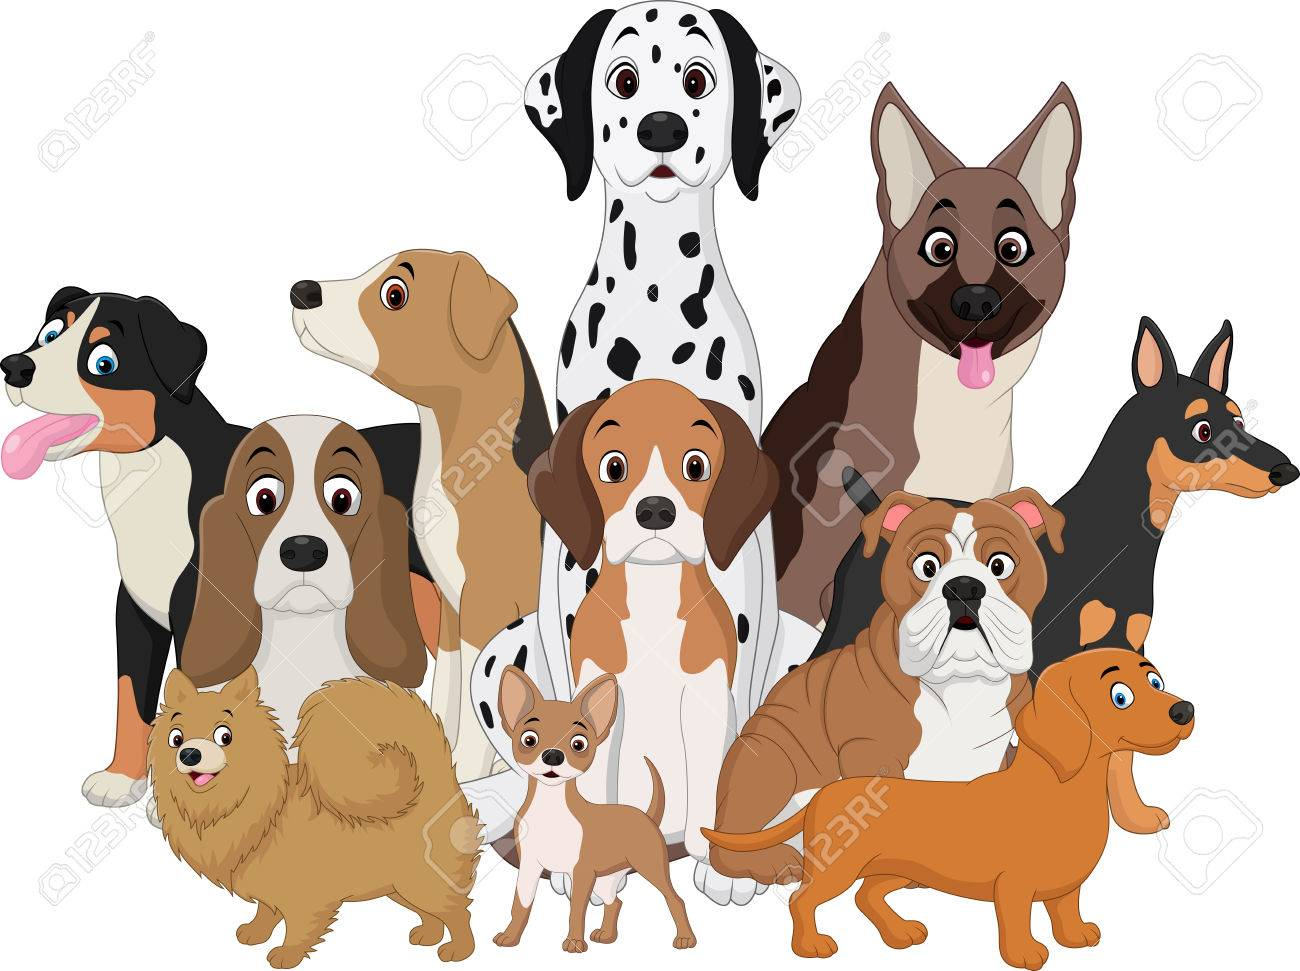 Image of: Png Illustration Of Set Of Funny Dogs Cartoon Stock Vector 69363160 123rfcom Illustration Of Set Of Funny Dogs Cartoon Royalty Free Cliparts